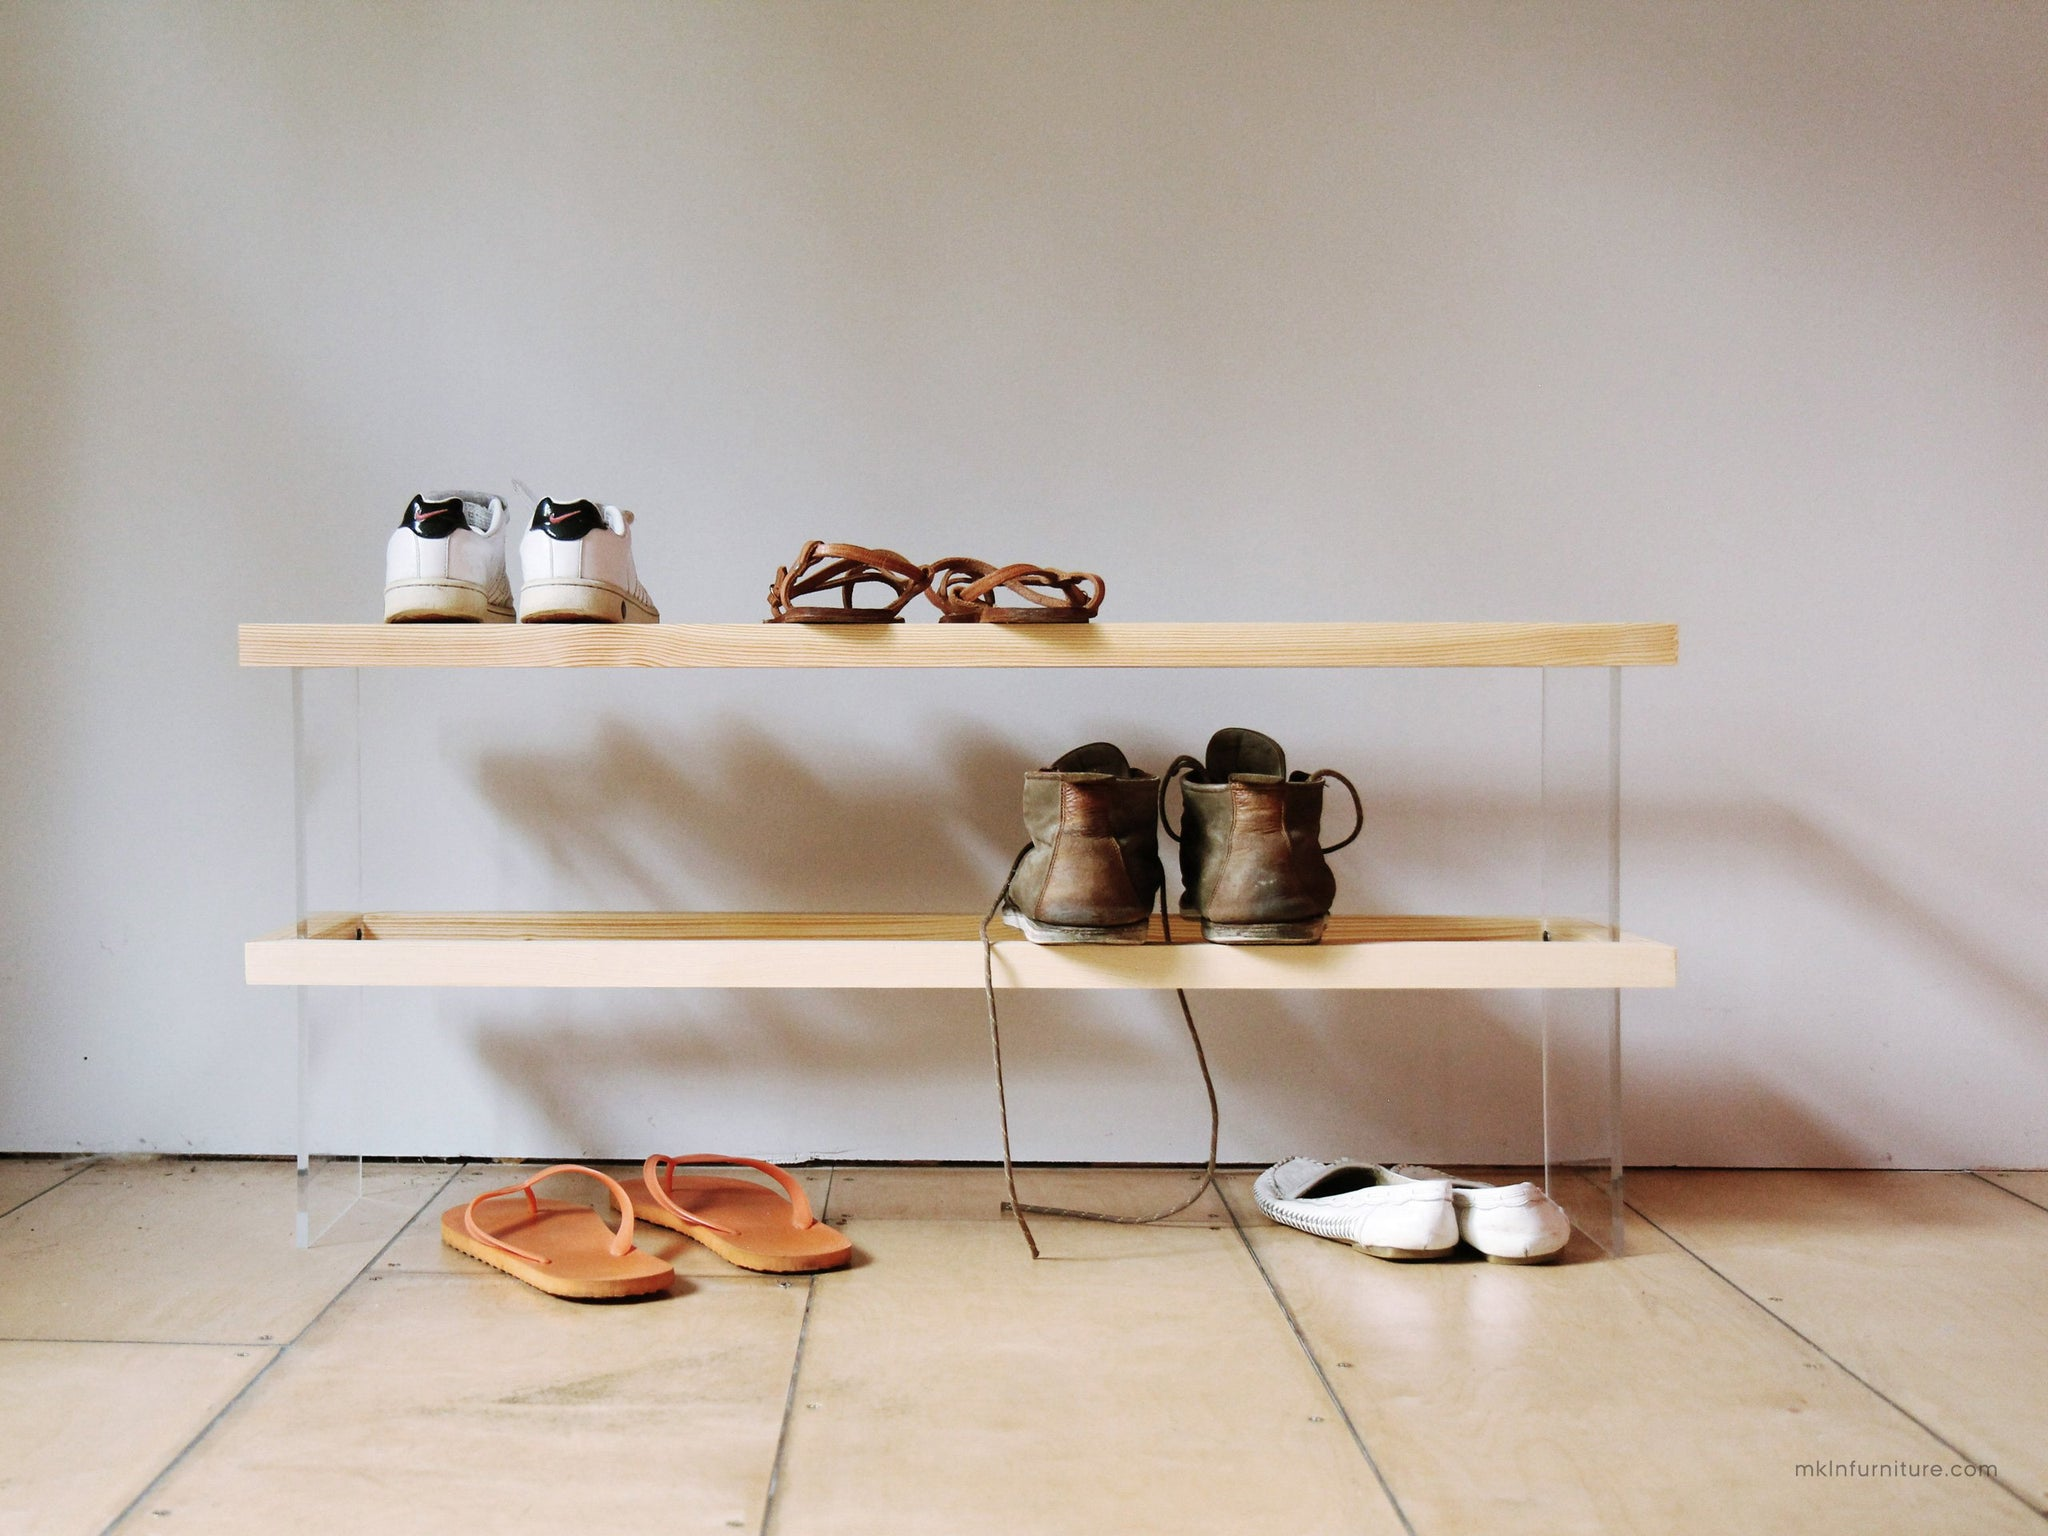 FLOAT 2F shoe rack